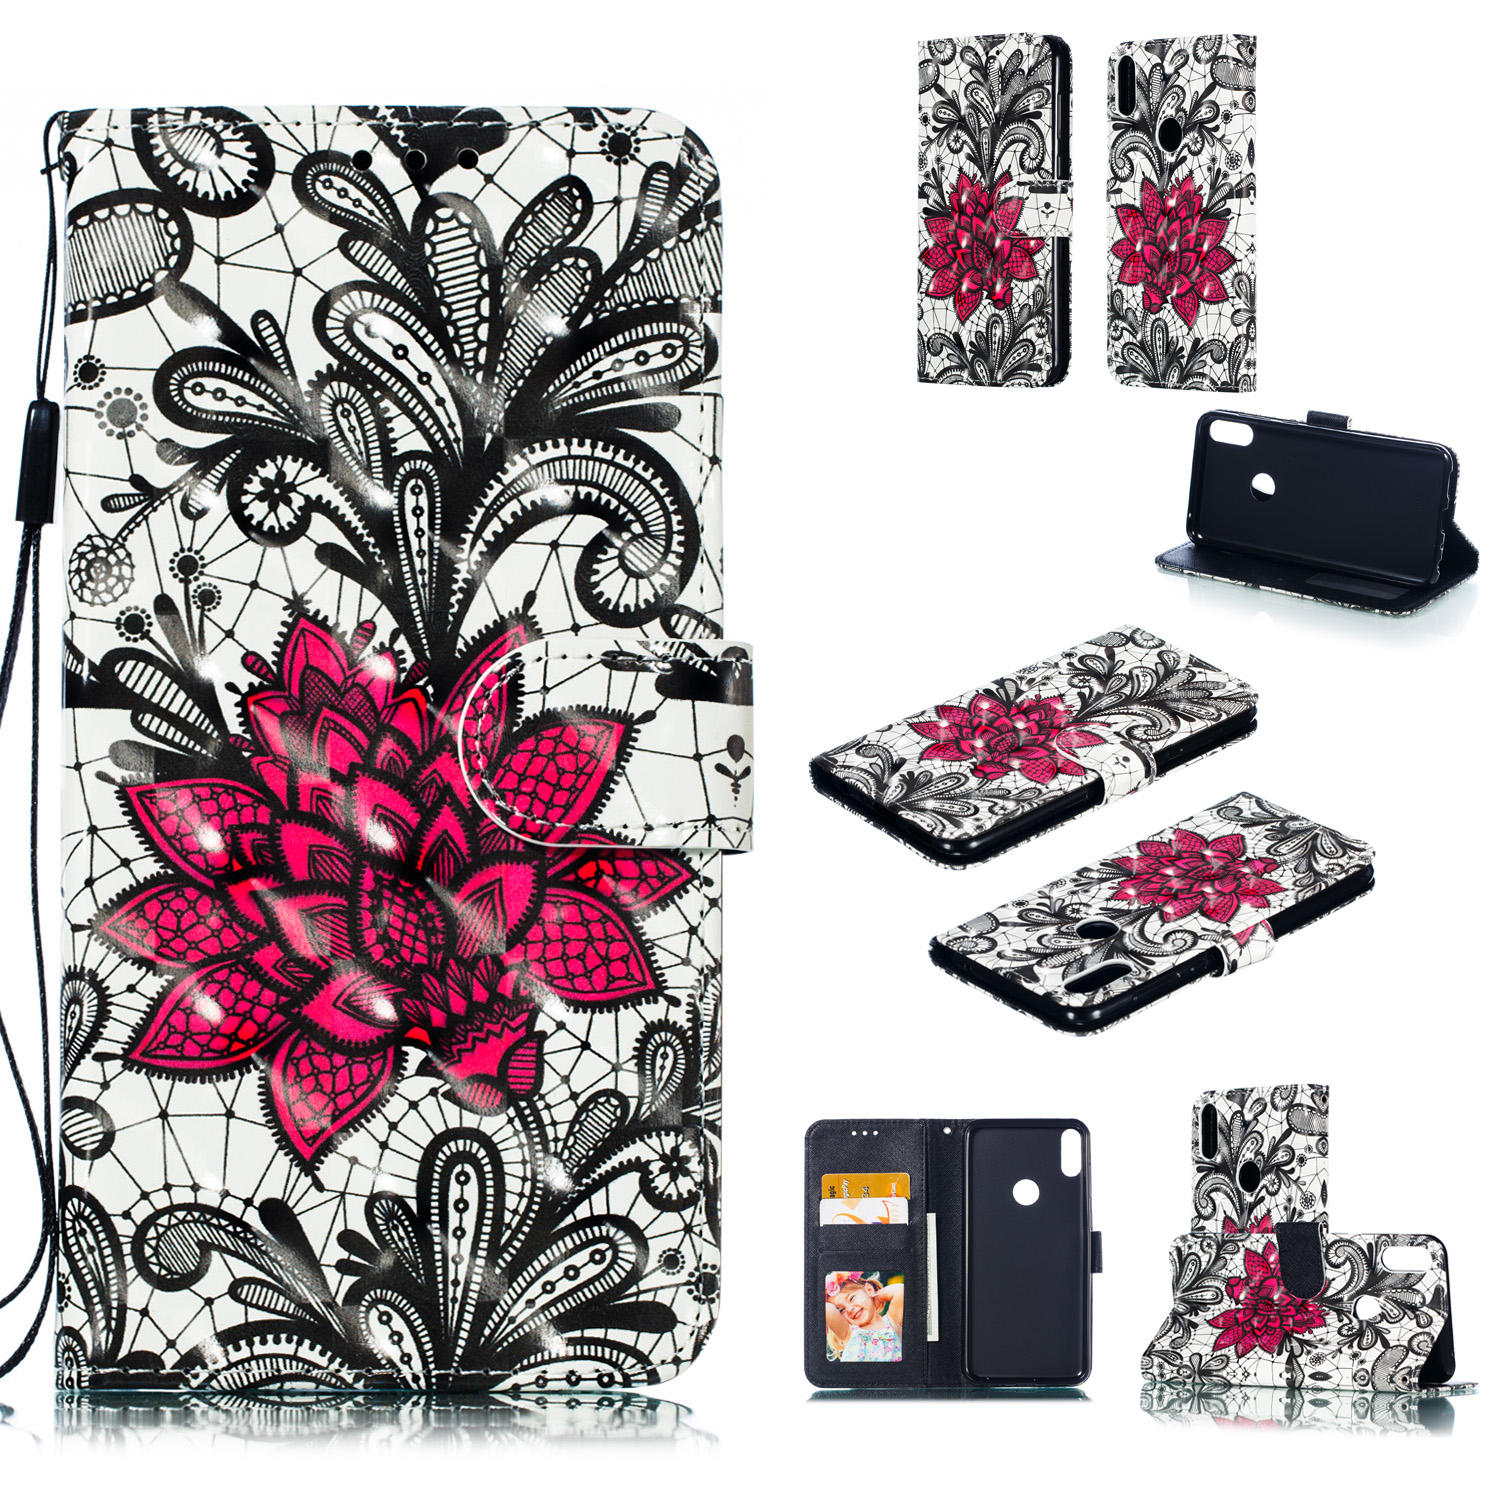 For ASUS ZENFONE MAX Pro M1/ZB601KL/ZB602KL 3D Coloured Painted PU Magnetic Clasp Phone Case with Card Slots Bracket Lanyard Lace flower